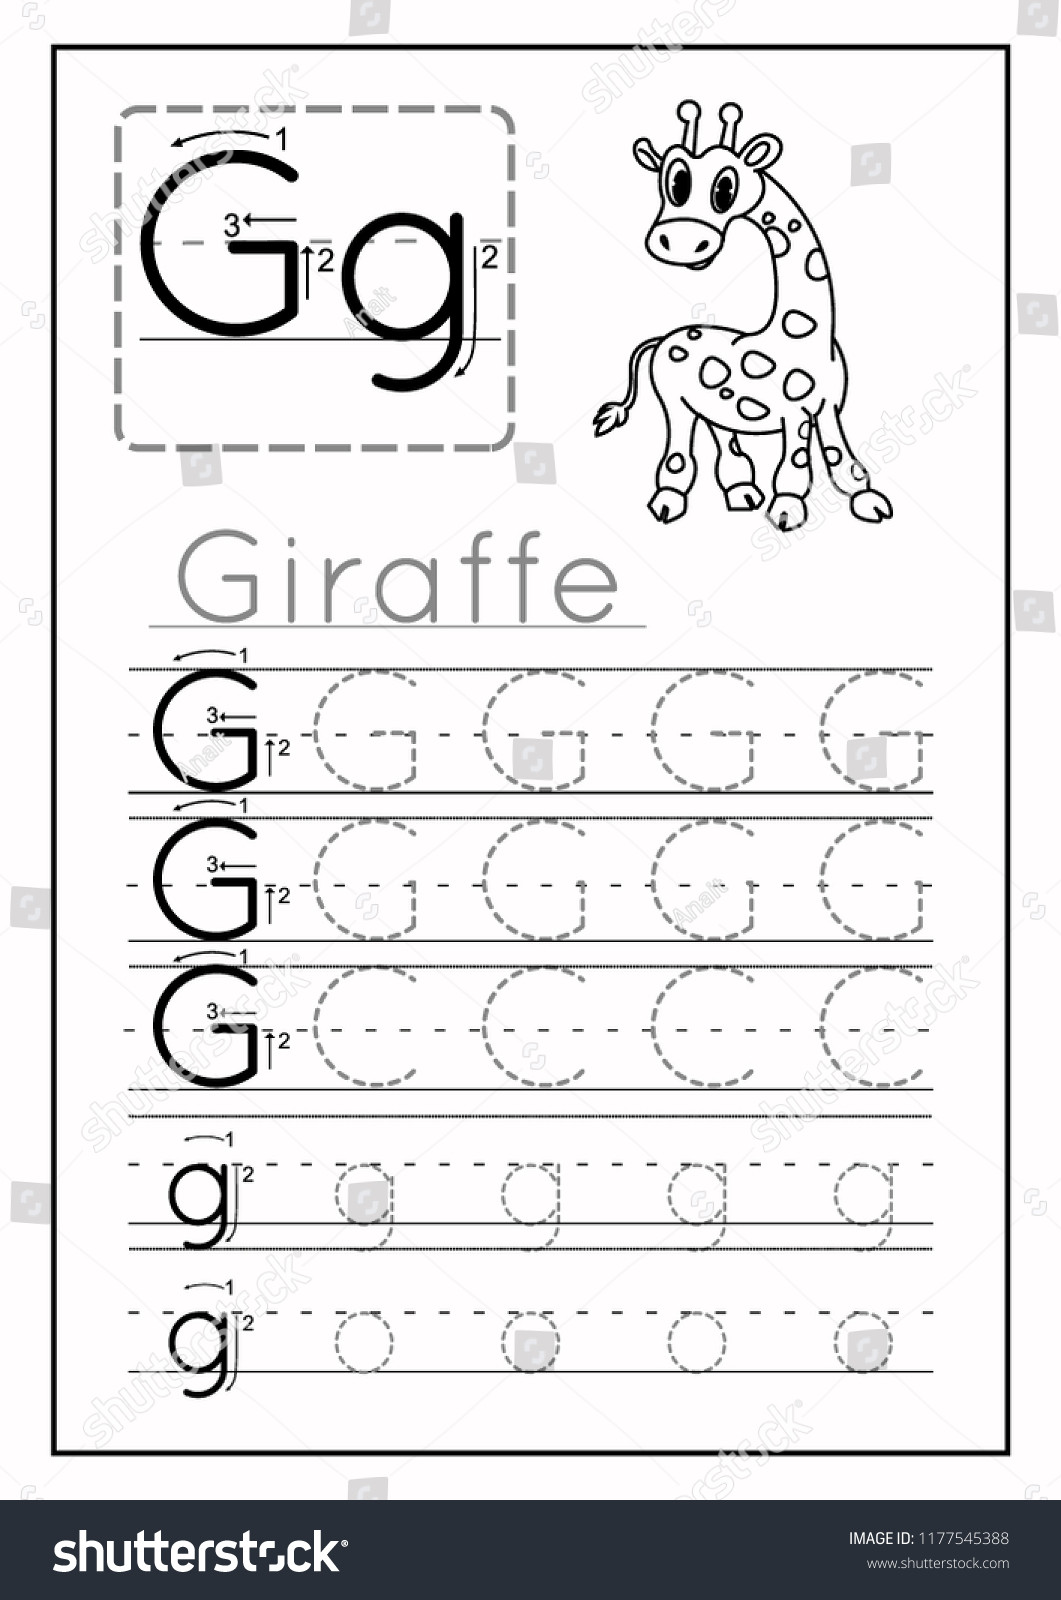 Preschool Letter G Worksheets Writing Practice Letter G Printable Worksheet เวกเตอร์สต็อก